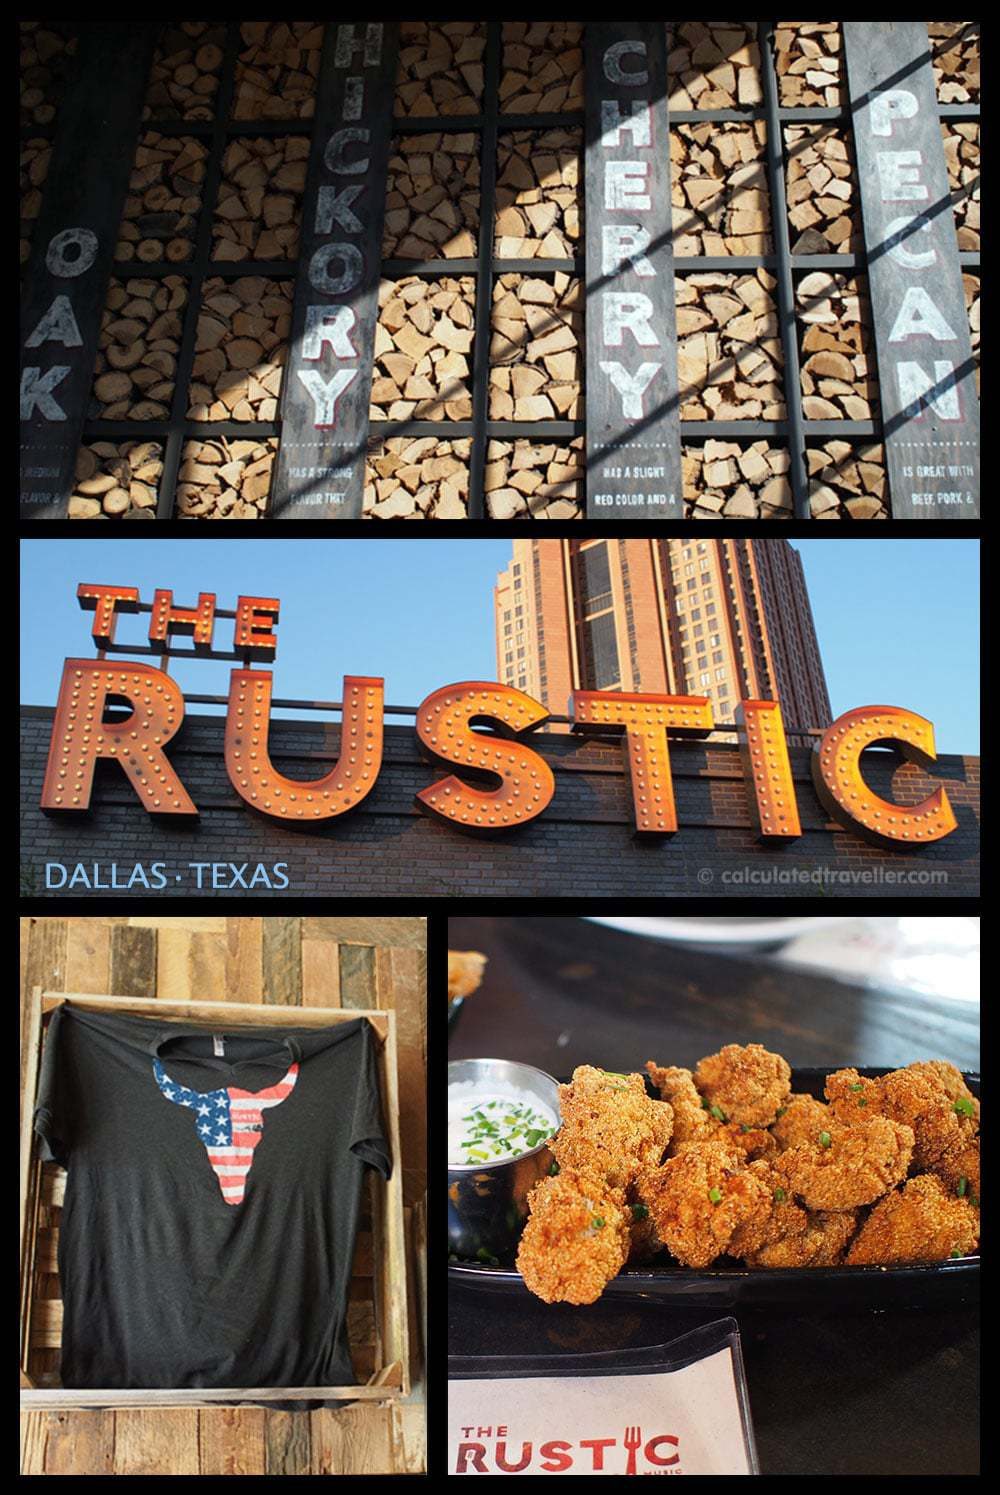 Eating #DallasBig at The Rustic Dallas Texas by Calculated Traveller